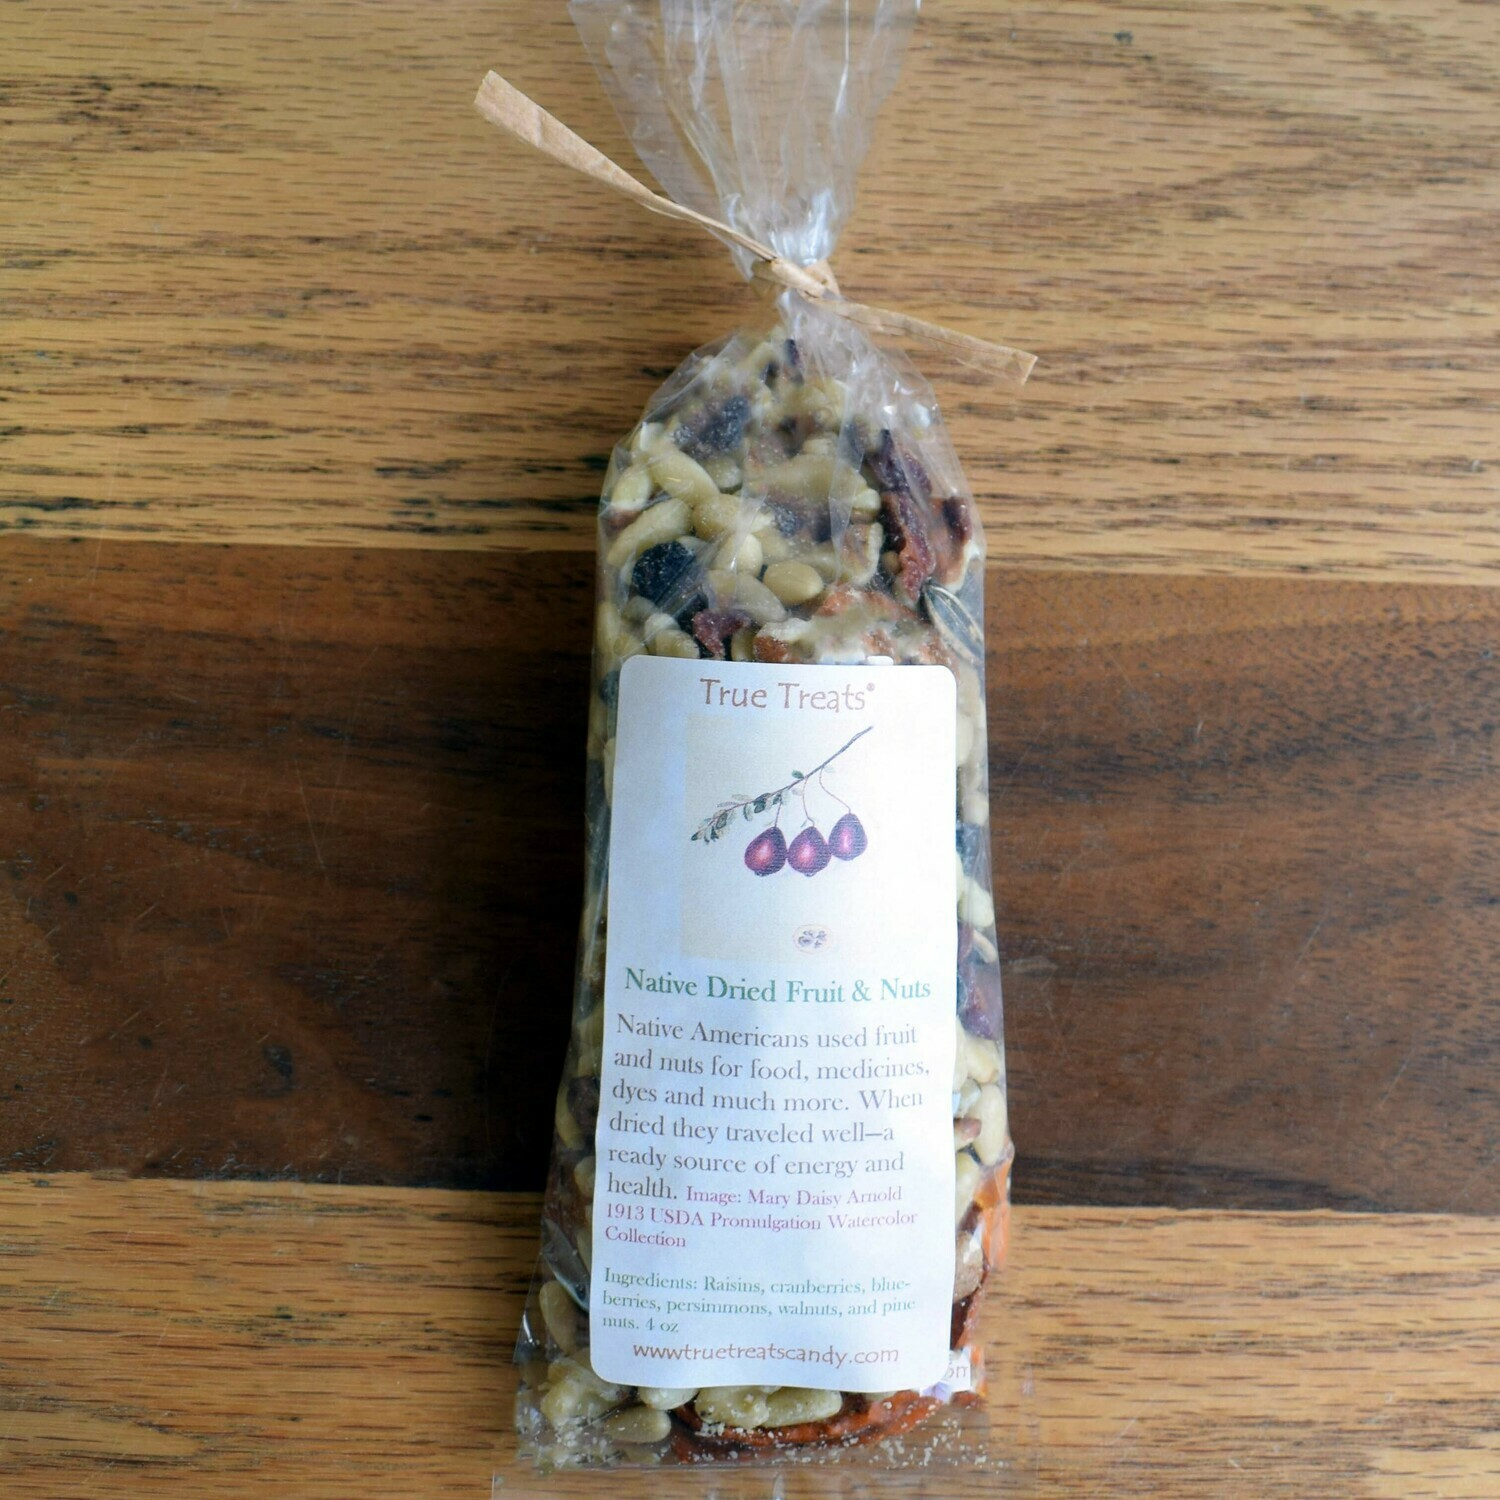 Native Dried Fruits and Nuts